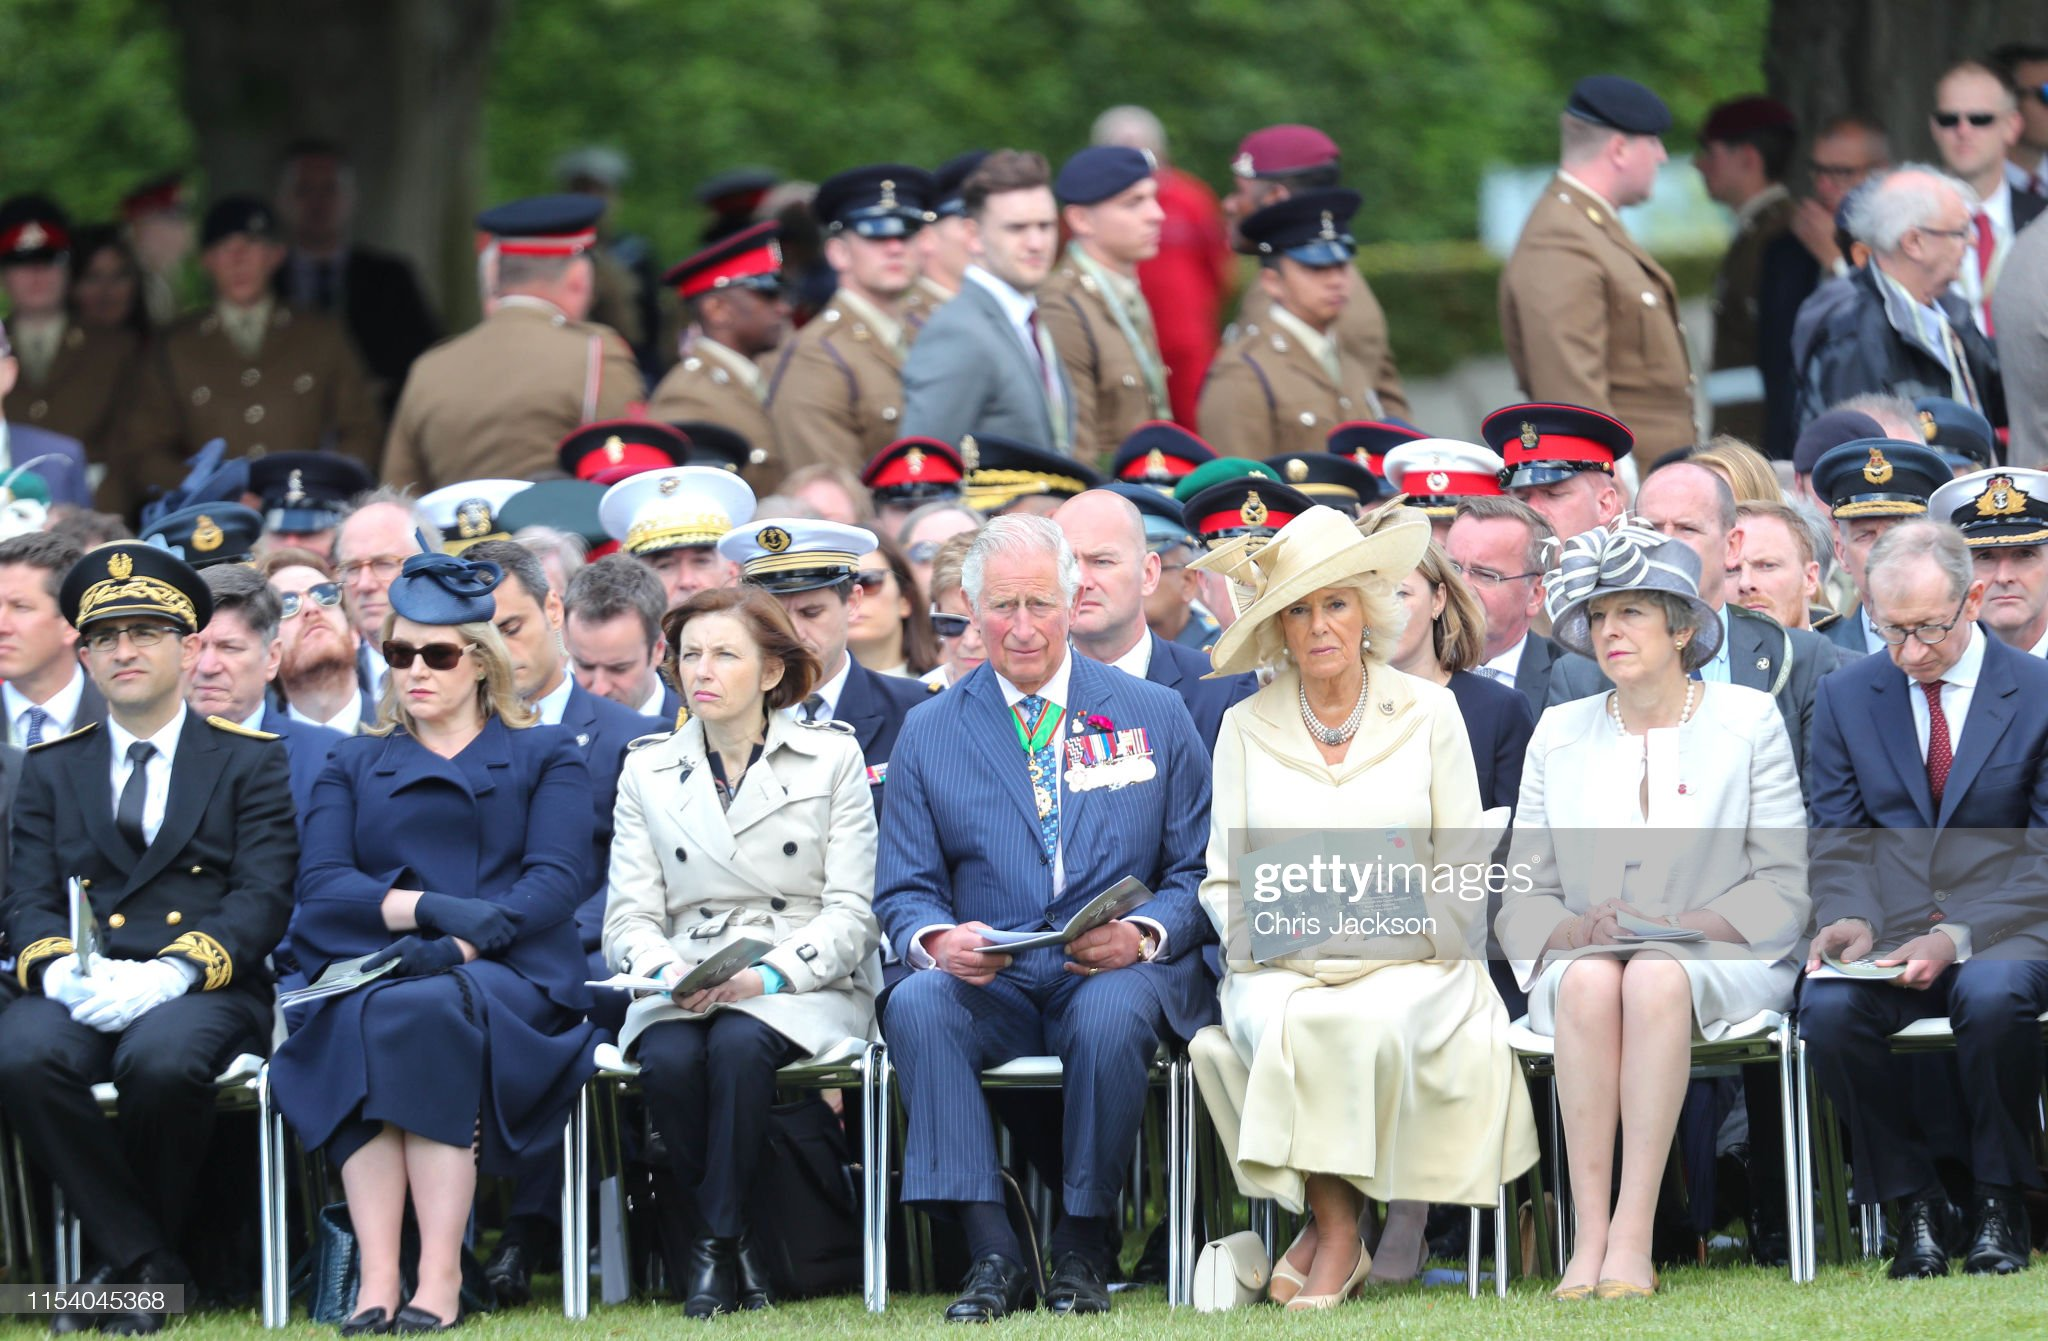 secretary-of-state-for-defence-penny-mourdaunt-prince-charles-prince-picture-id1154045368